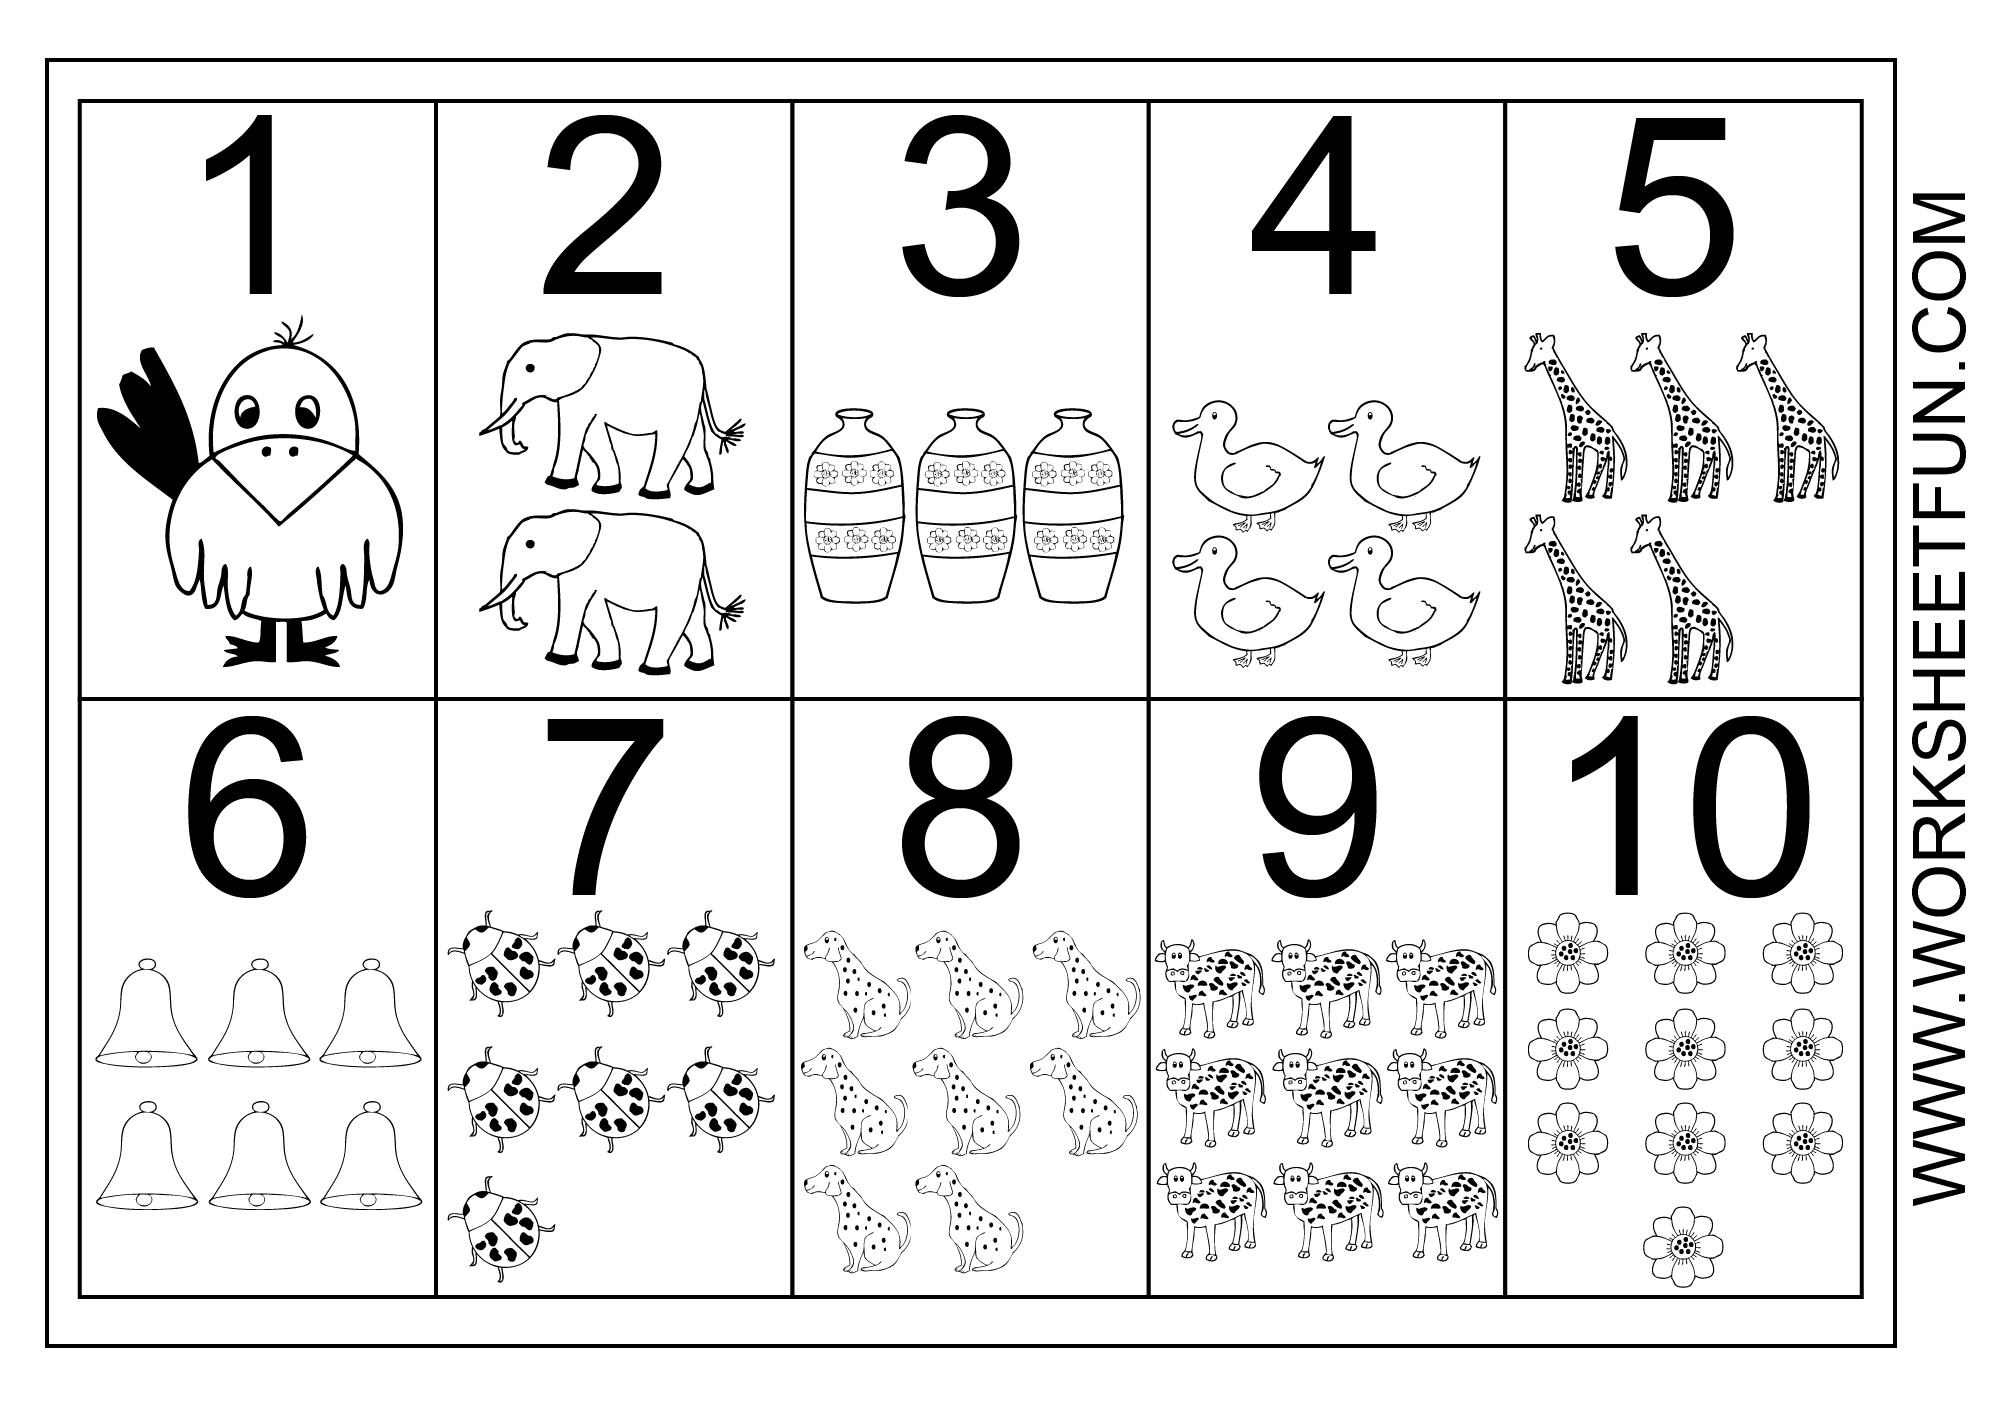 10 via preschool worksheets numbers 5 number 10 worksheets for ...